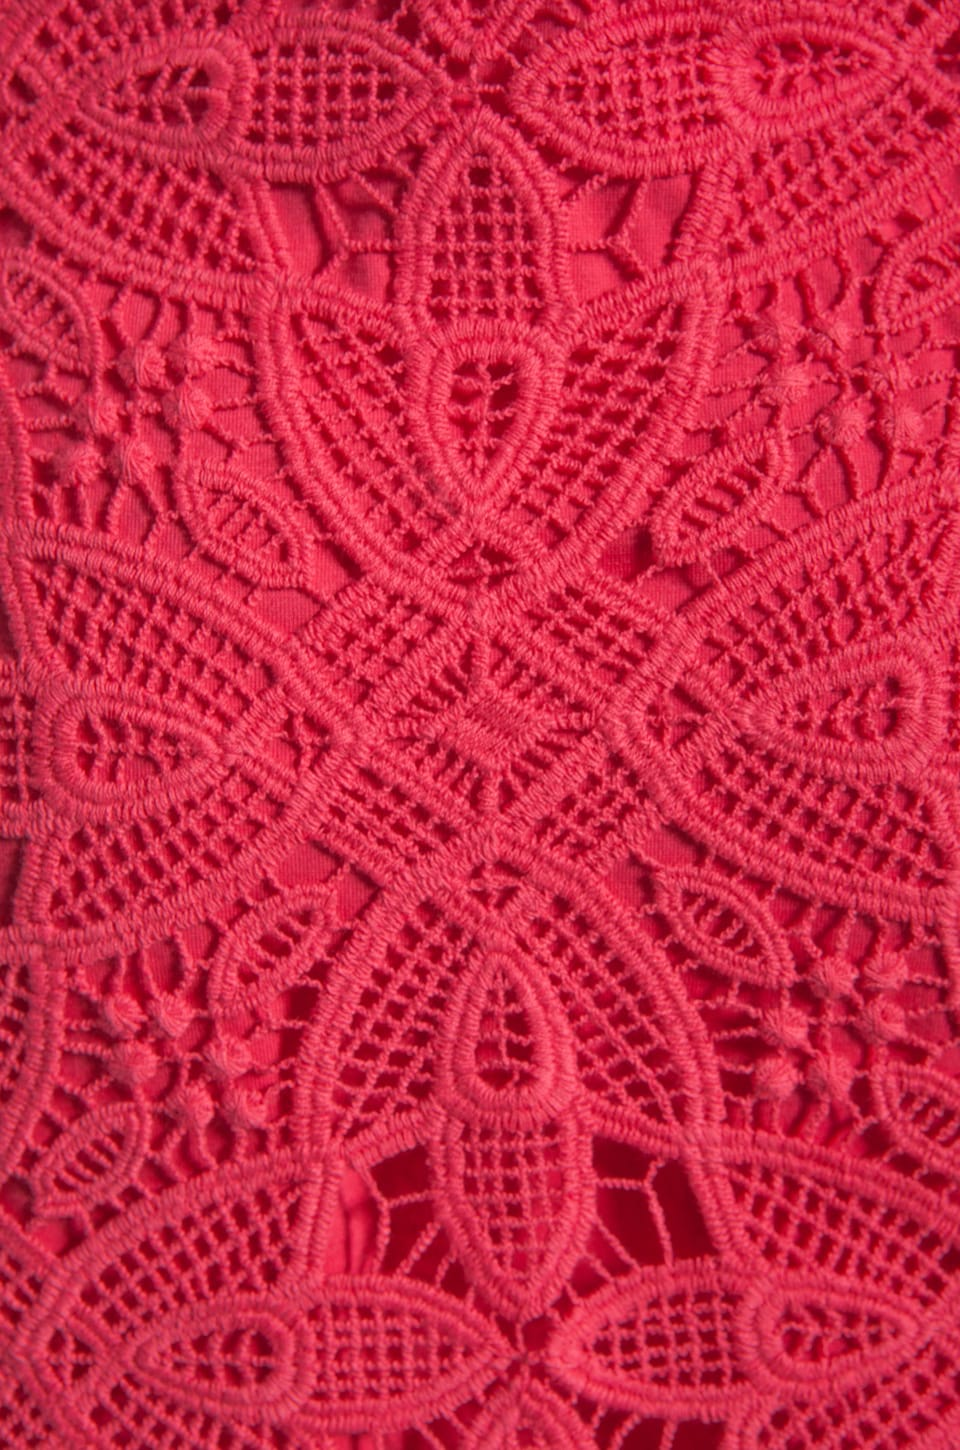 BB Dakota Maiden Crochet Lace Dress in Fiery Pink